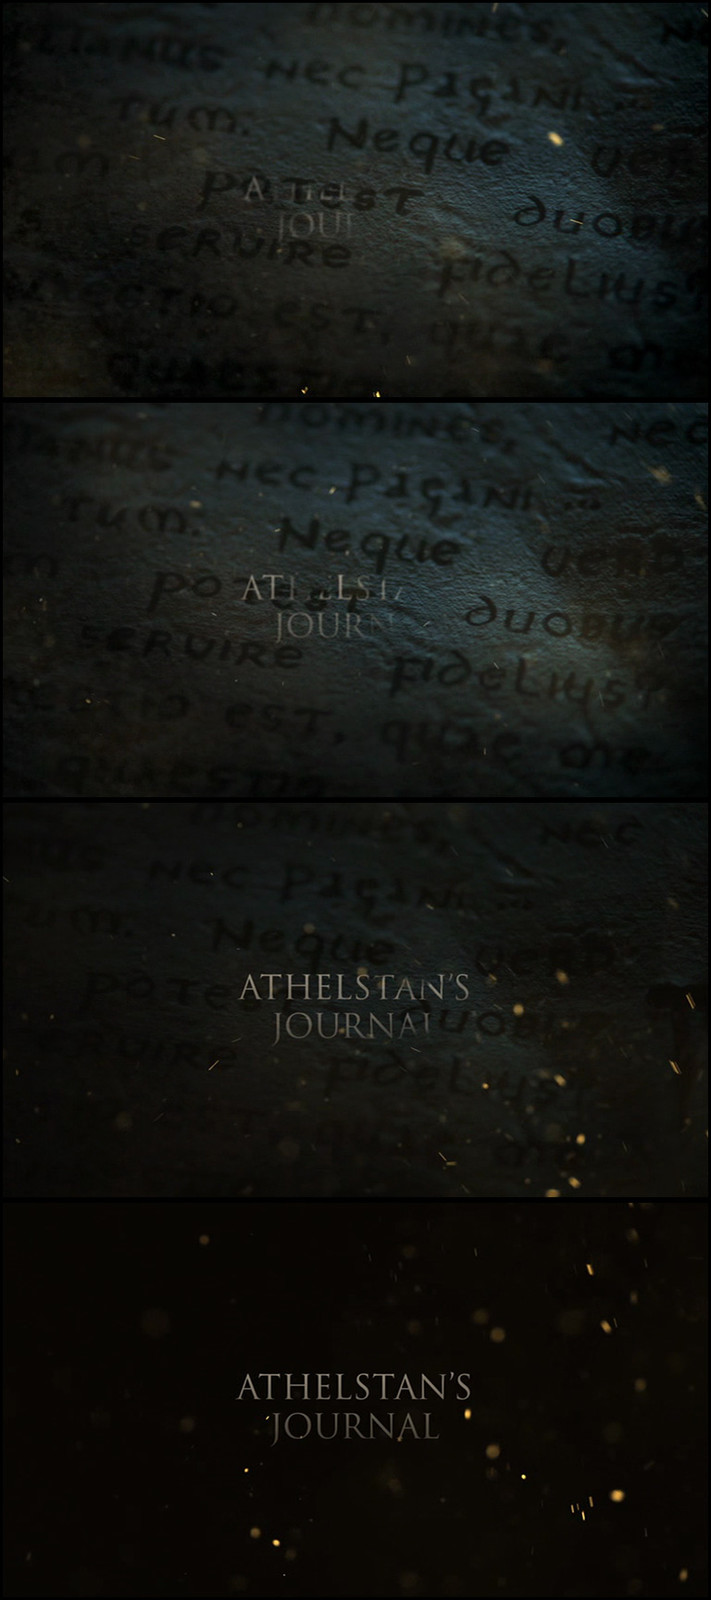 Latin writing, used during title sequence.